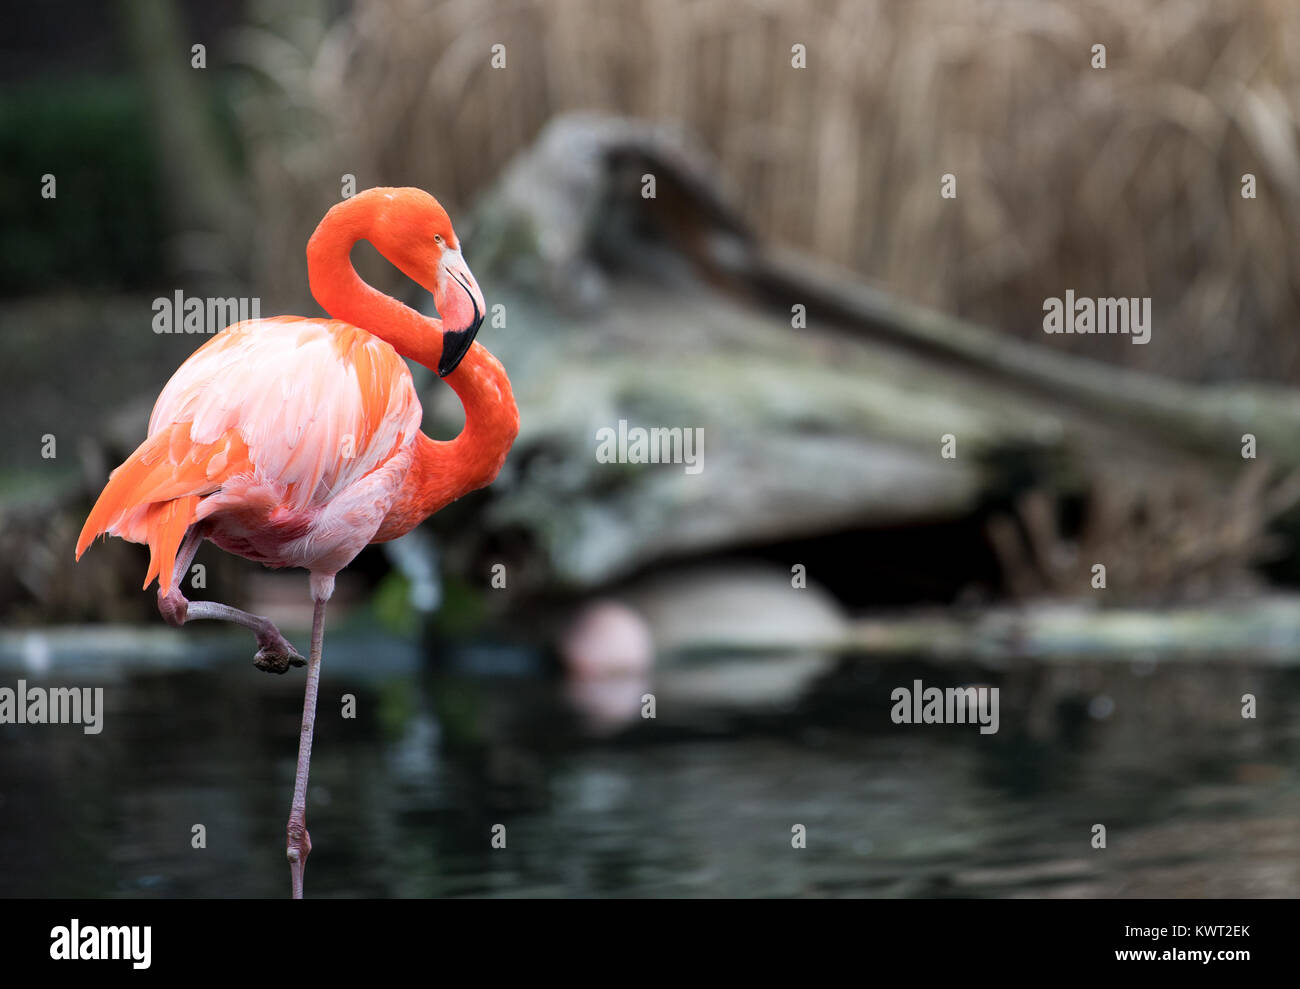 Dresden, Germany. 4th Jan, 2018. A flamingo stand in the flamingo enclosure at the zoo in Dresden, Germany, 4 January - Stock Image